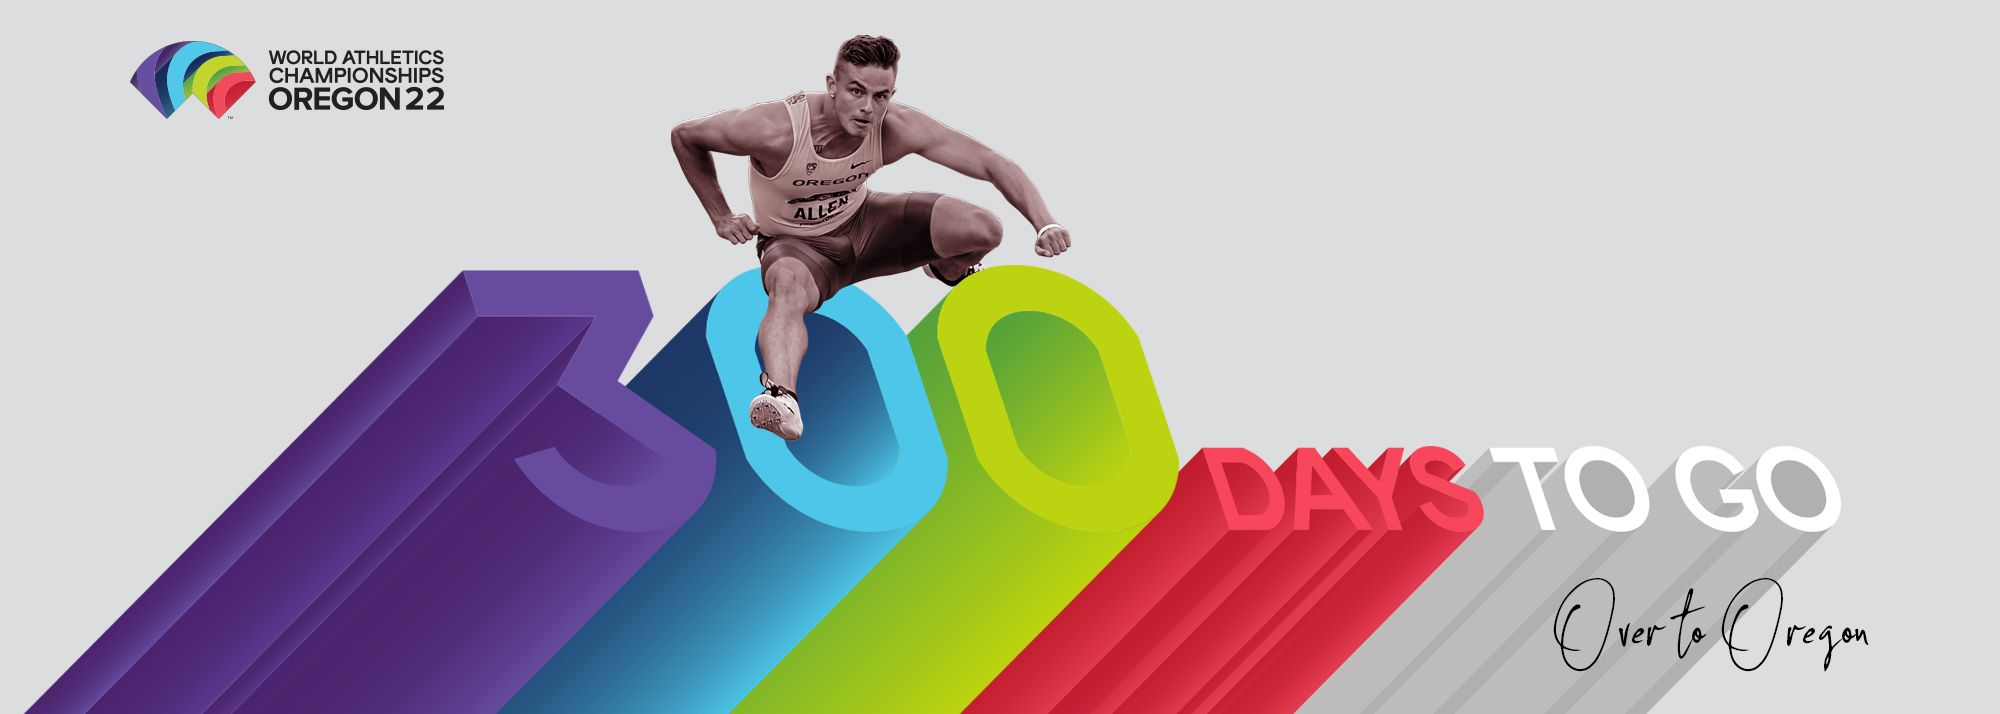 Poker fan Devon Allen has raised the stakes in the men's 110m hurdles after breaking 13 seconds for the first time